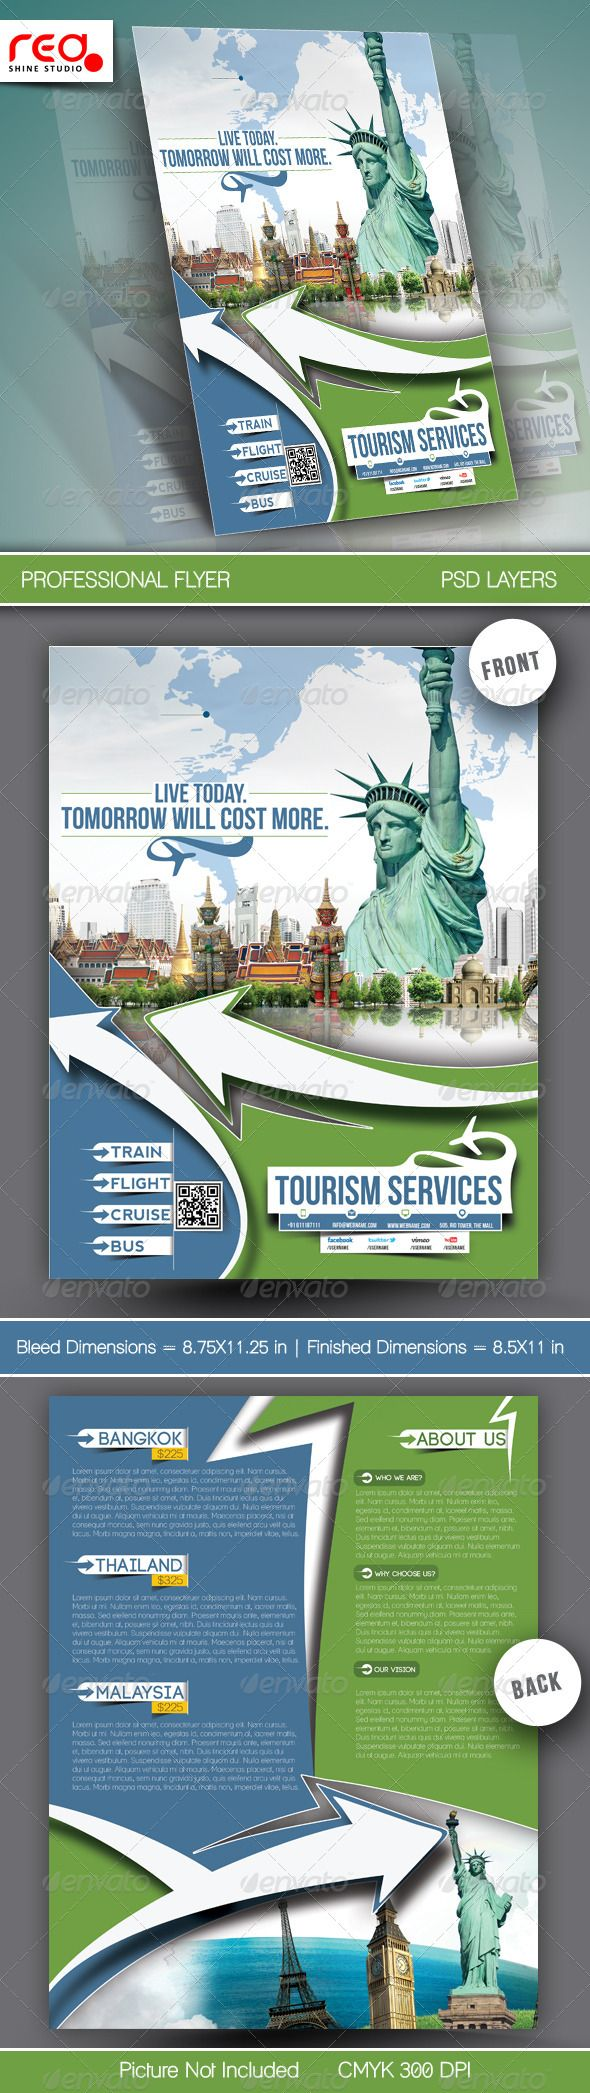 Travel Tours Flyer Template 290 best Travel